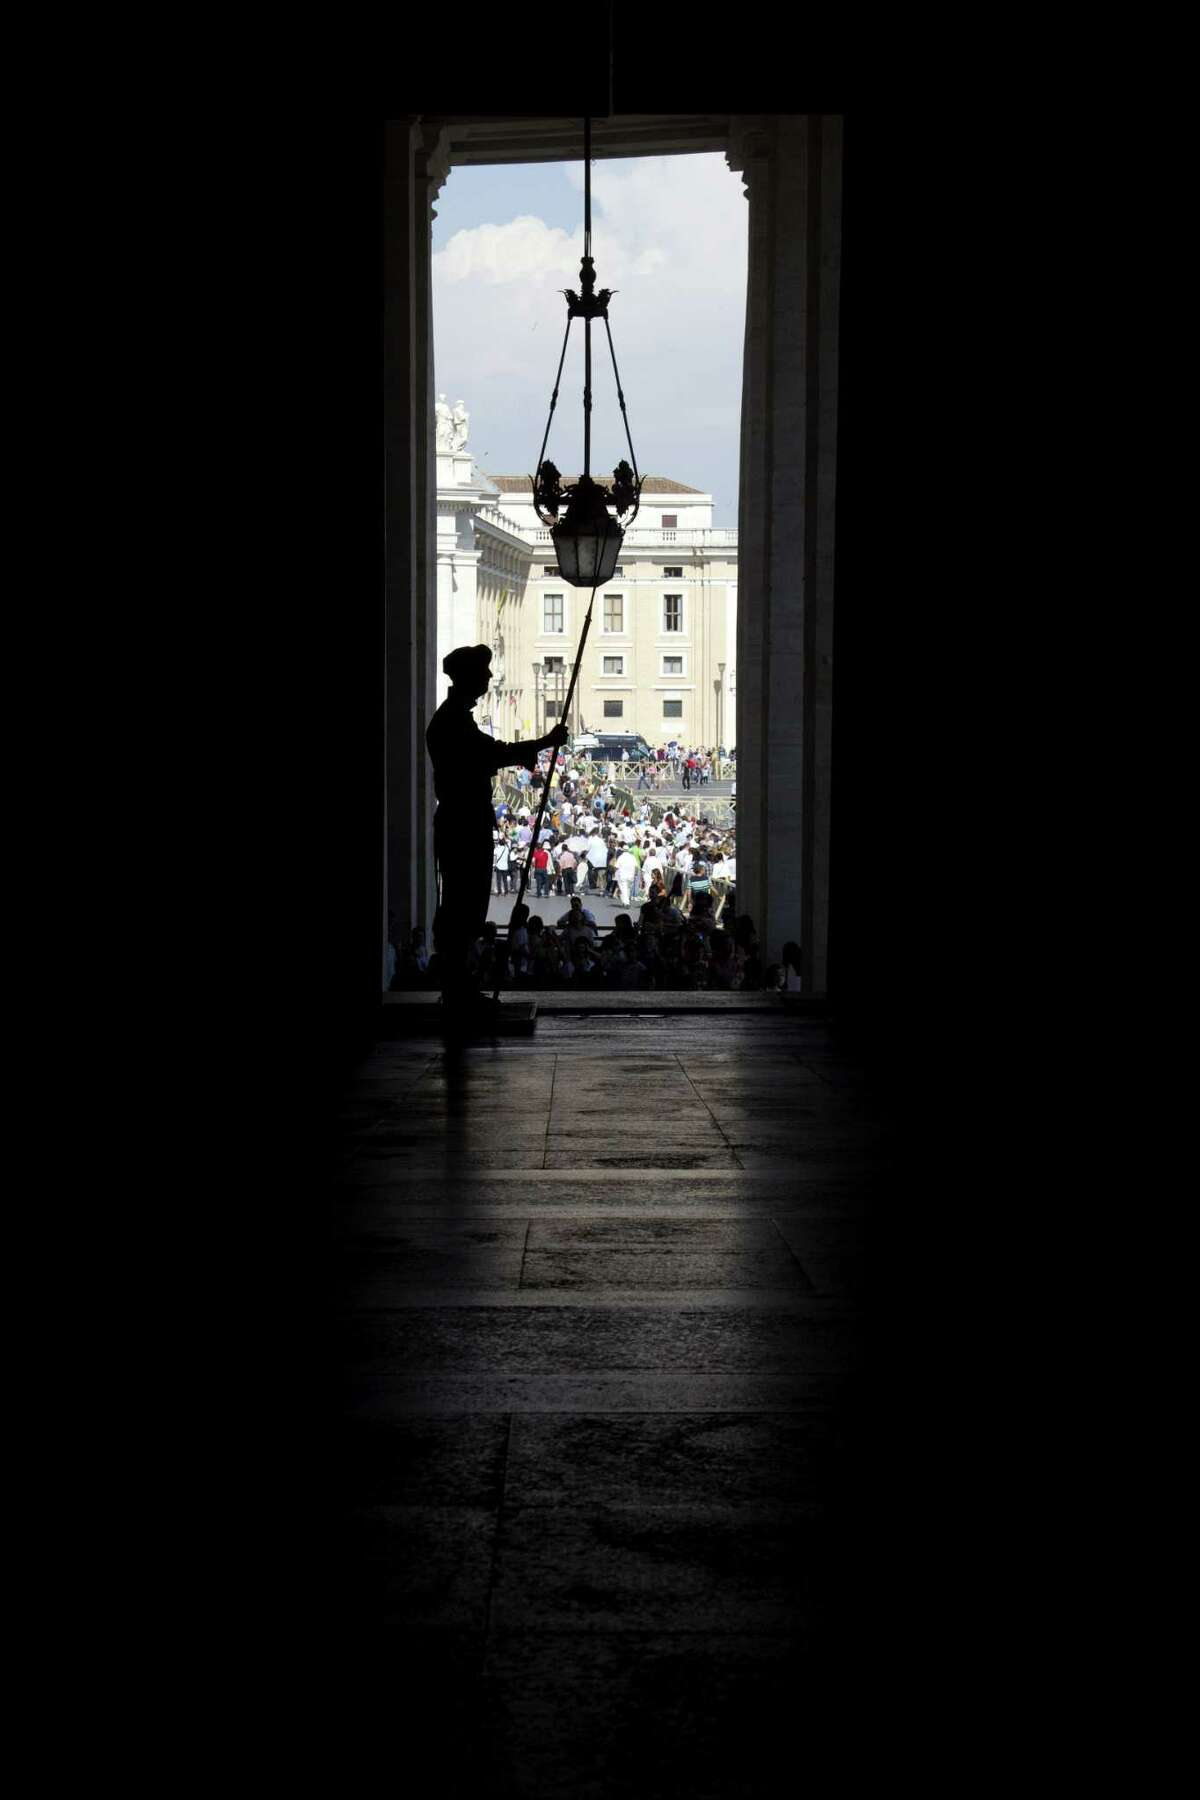 A Swiss guard is silhouetted against the crowd as he stands guard at the Vatican prior to the arrival of Russia President Vladimir Putin for a private audience with Pope Francis, Wednesday, June 10, 2015. Russian President Vladimir Putin was meeting Wednesday with Italian officials and Pope Francis as the U.S. sought to encourage the Vatican to join the West in condemning Moscow's actions in Ukraine. (AP Photo/Andrew Medichini)